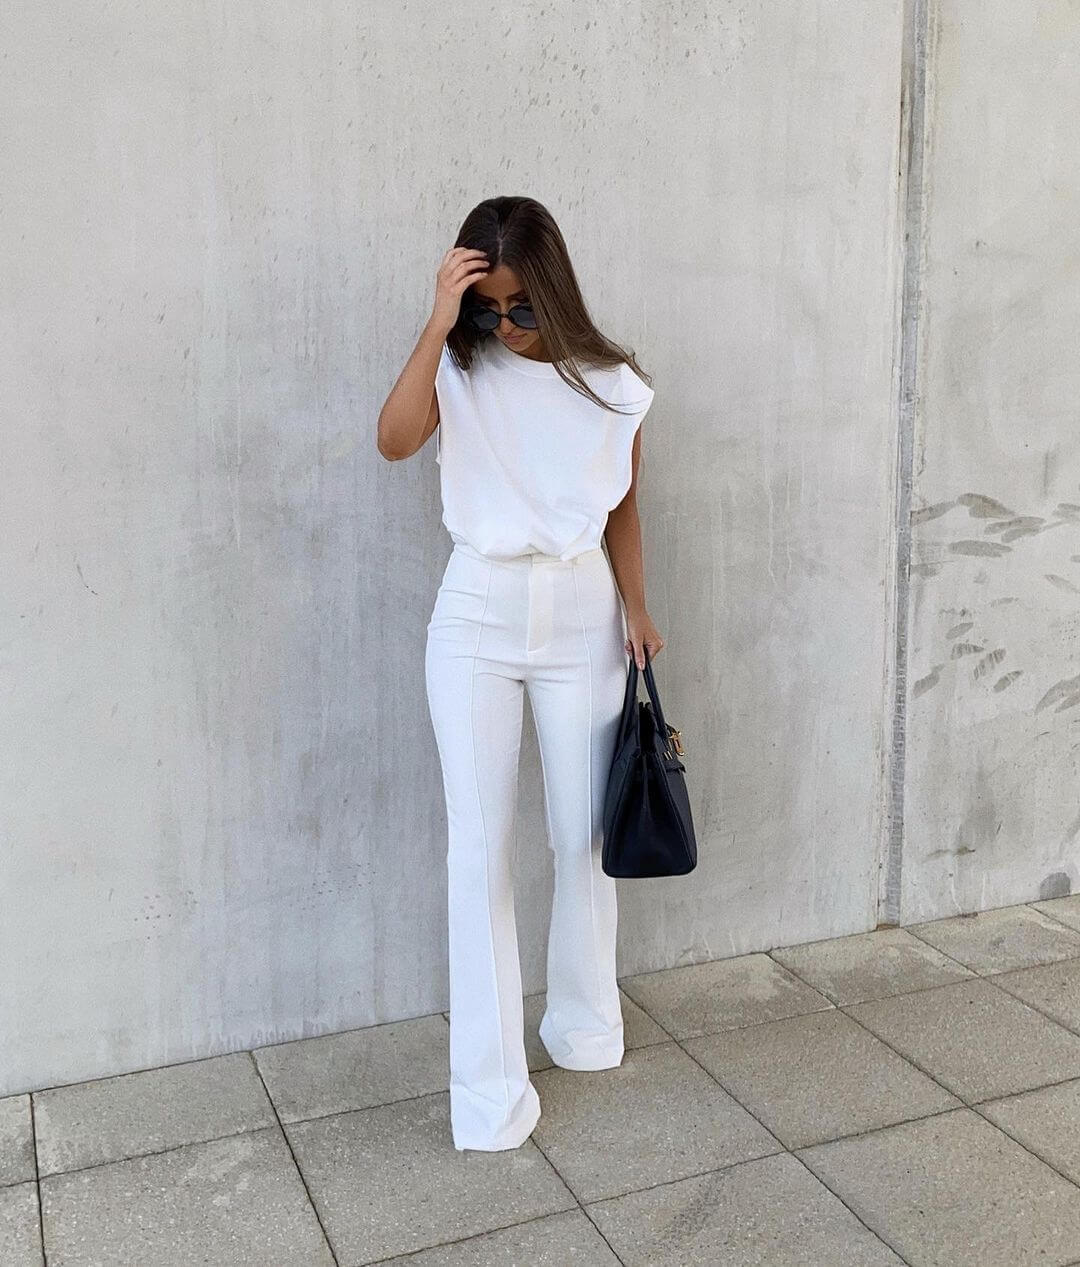 This Muscle Tee Outfit Is The Epitome Of Chic